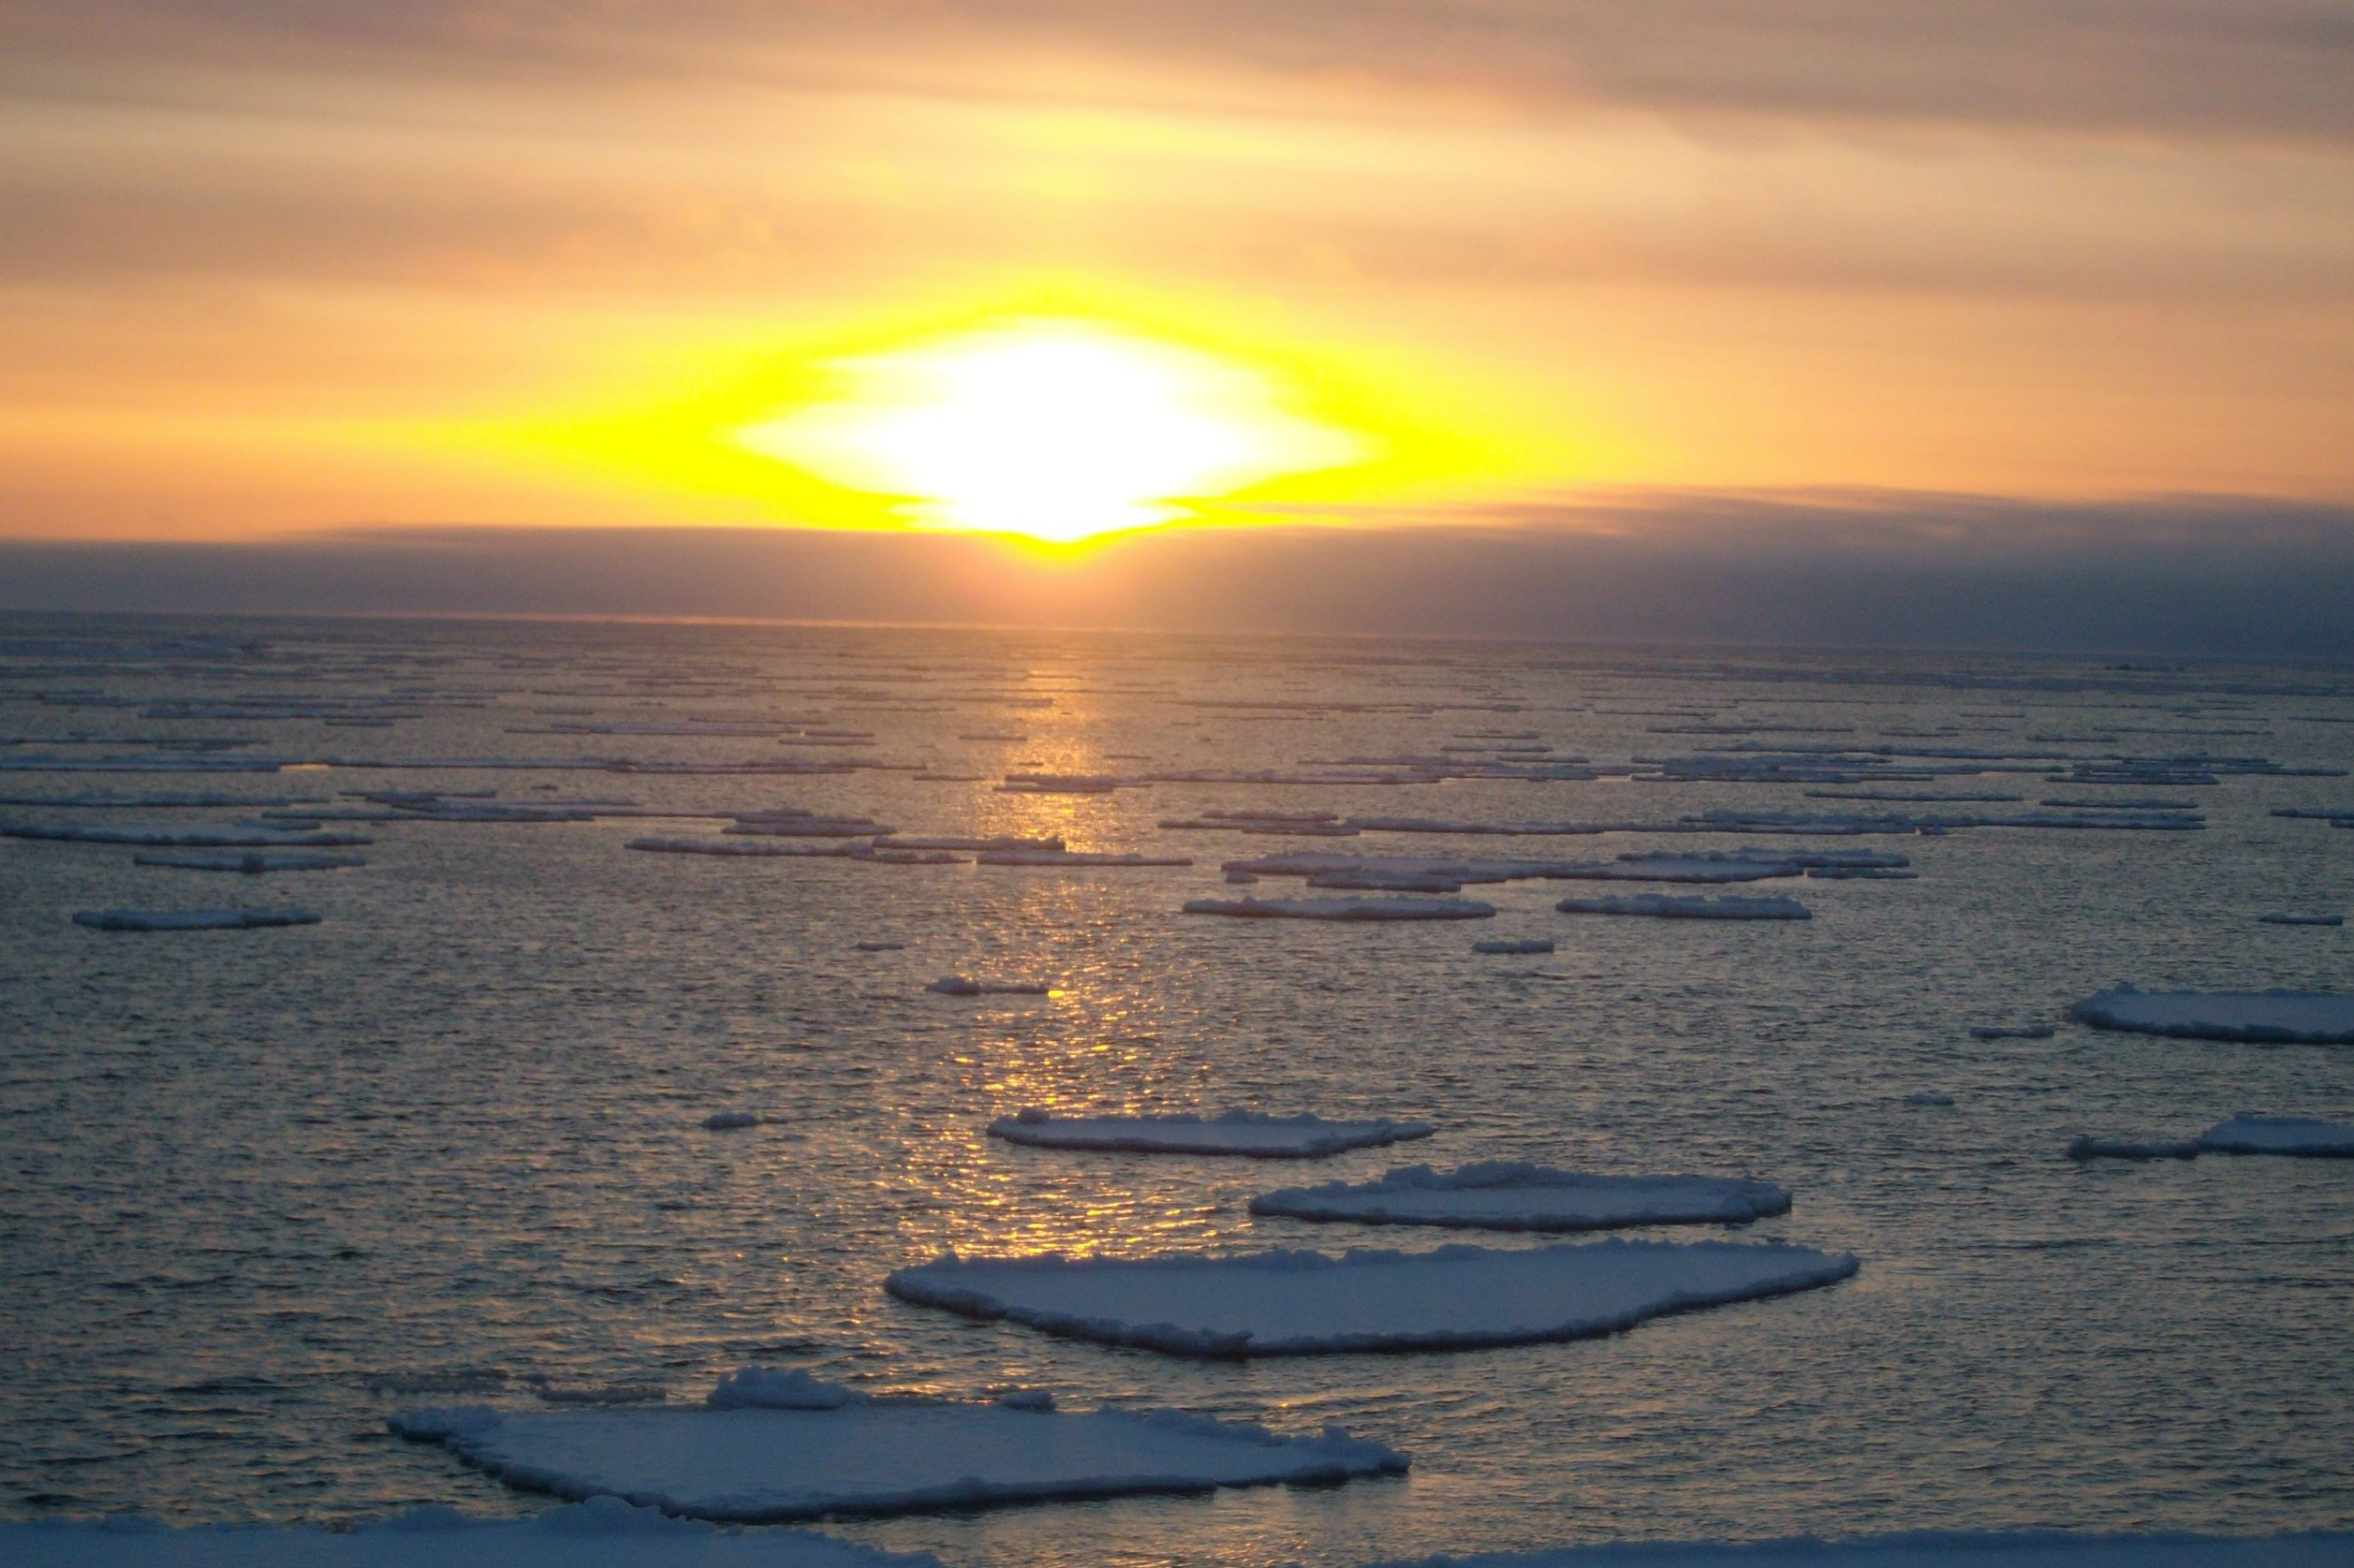 Warming temperatures and less ice are transforming the Bering Sea ecosystem, scientists say